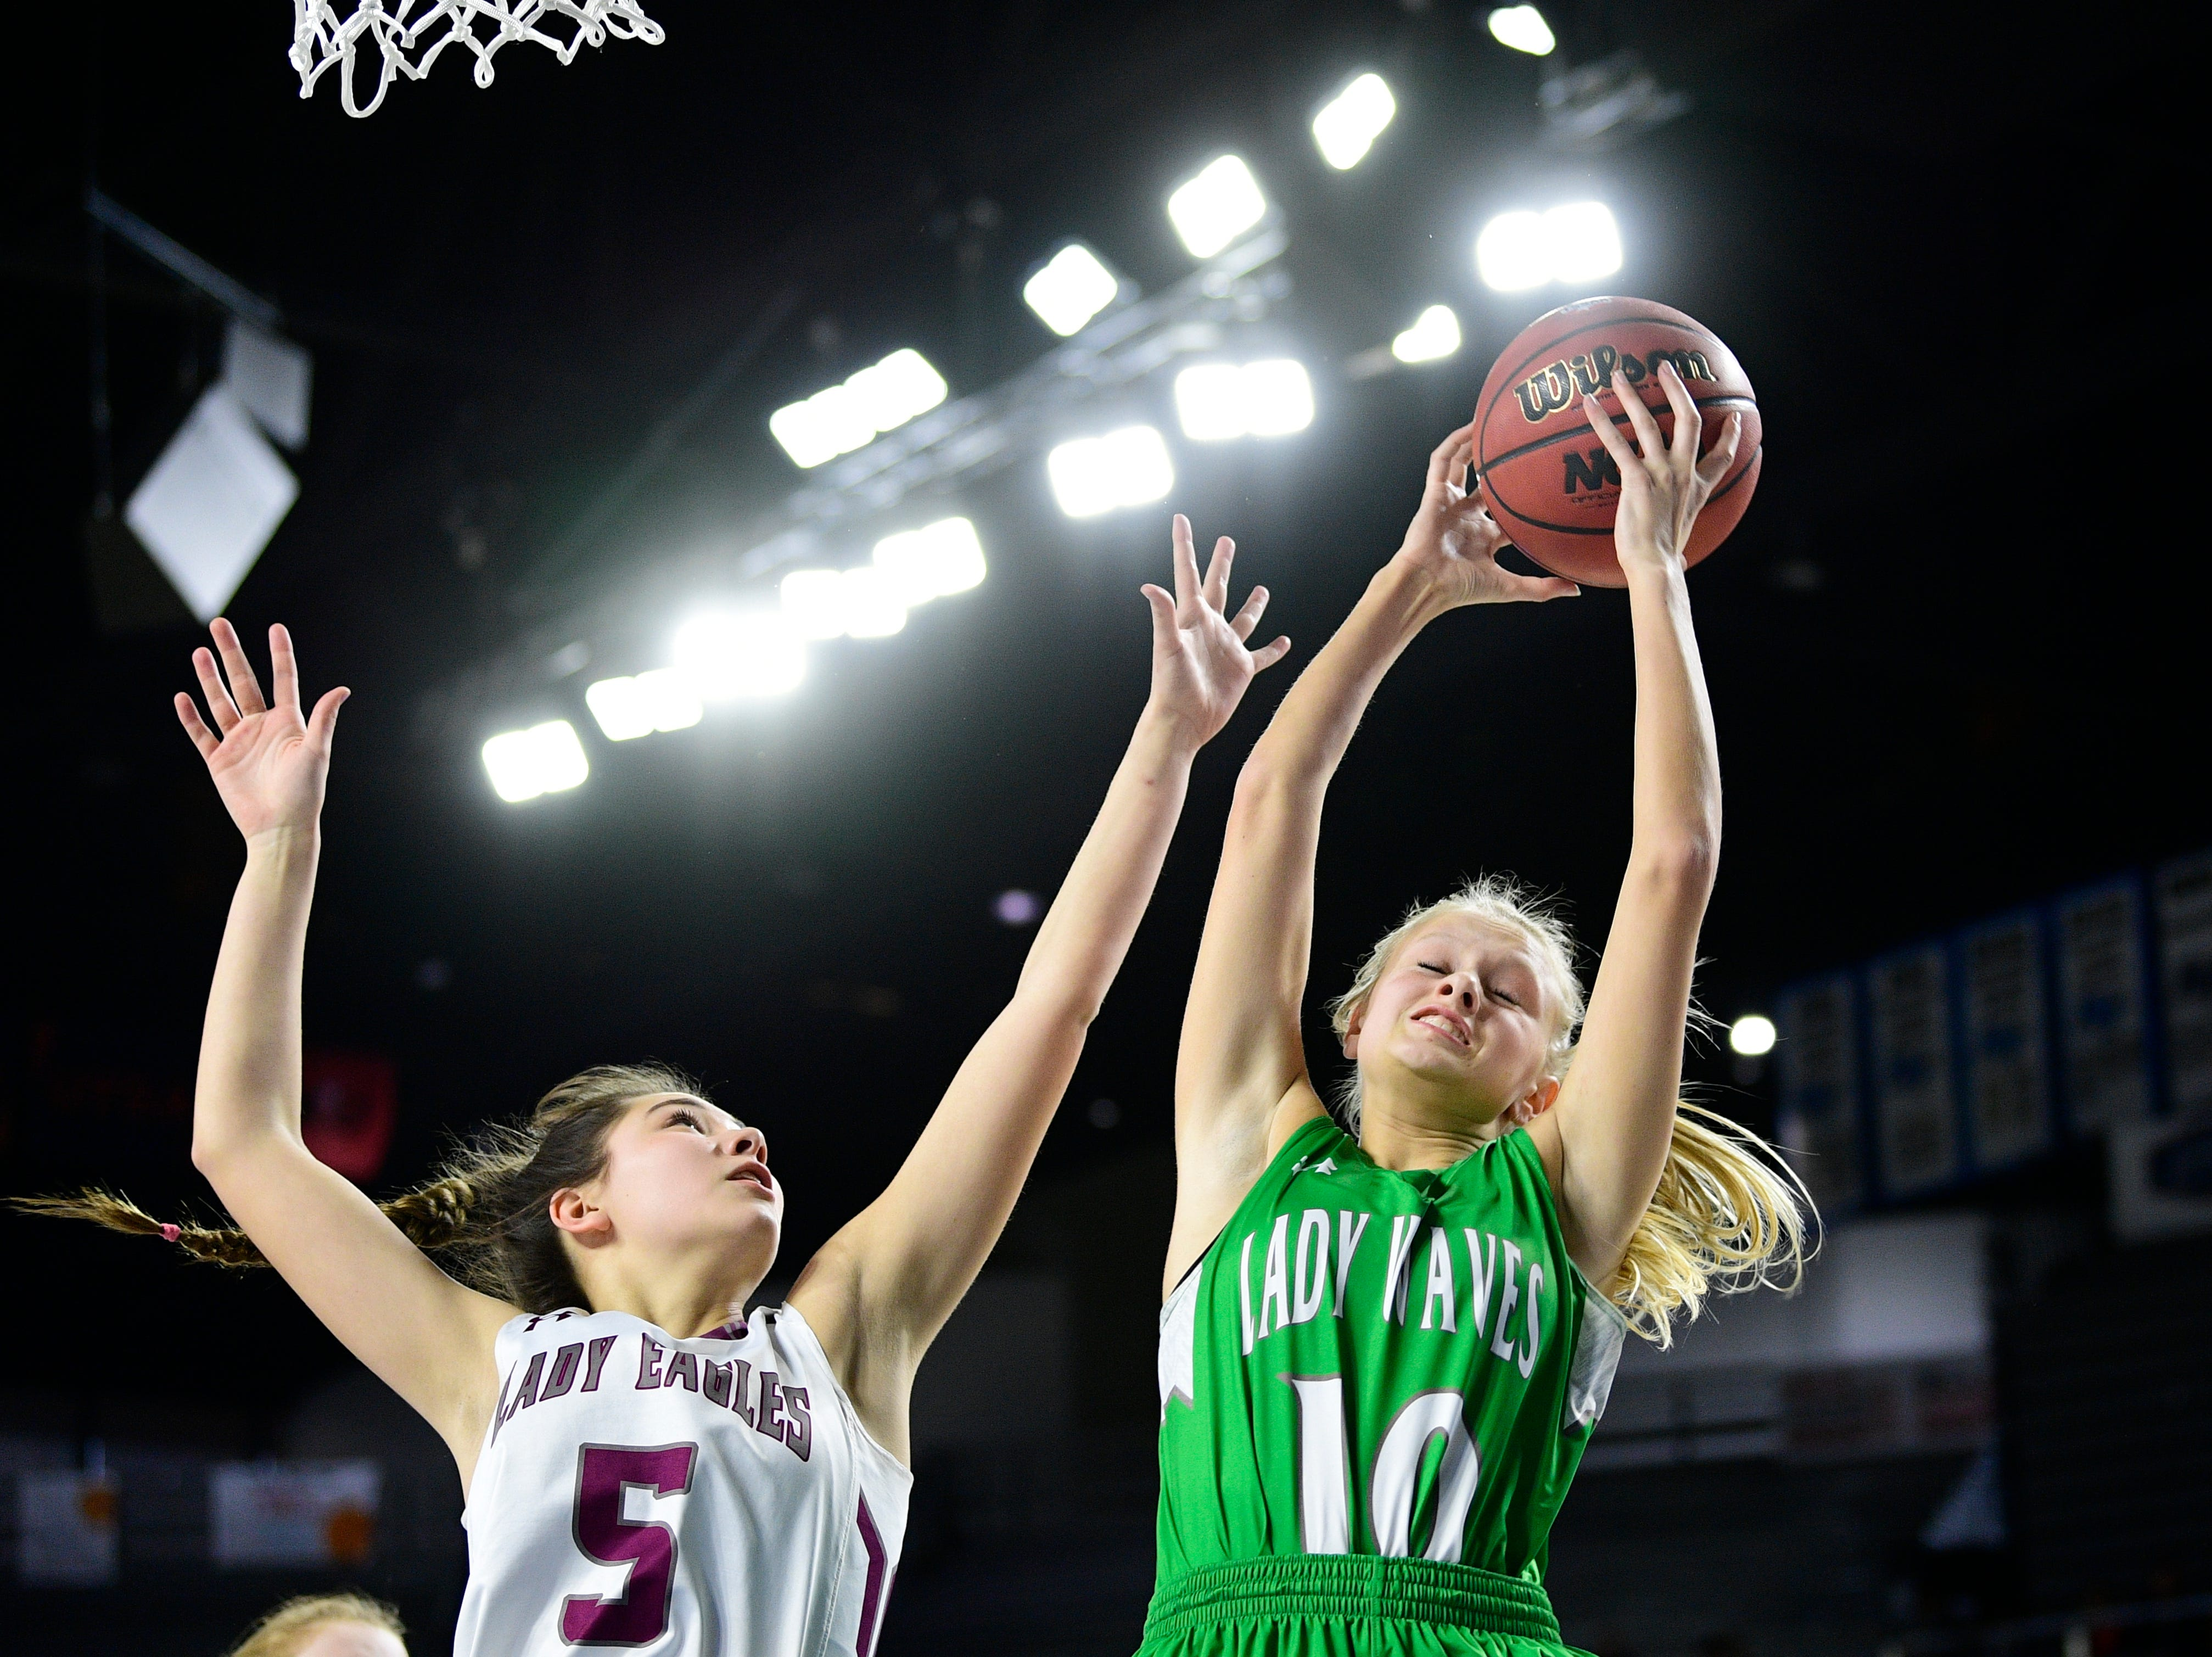 Midway's Heaven Prinzi (10) grabs the rebound past Eagleville's Elizabeth Thompson (5) during a game between Eagleville and Midway at the TSSAA girls state tournament at the Murphy Center in Murfreesboro, Tennessee on Thursday, March 7, 2019.